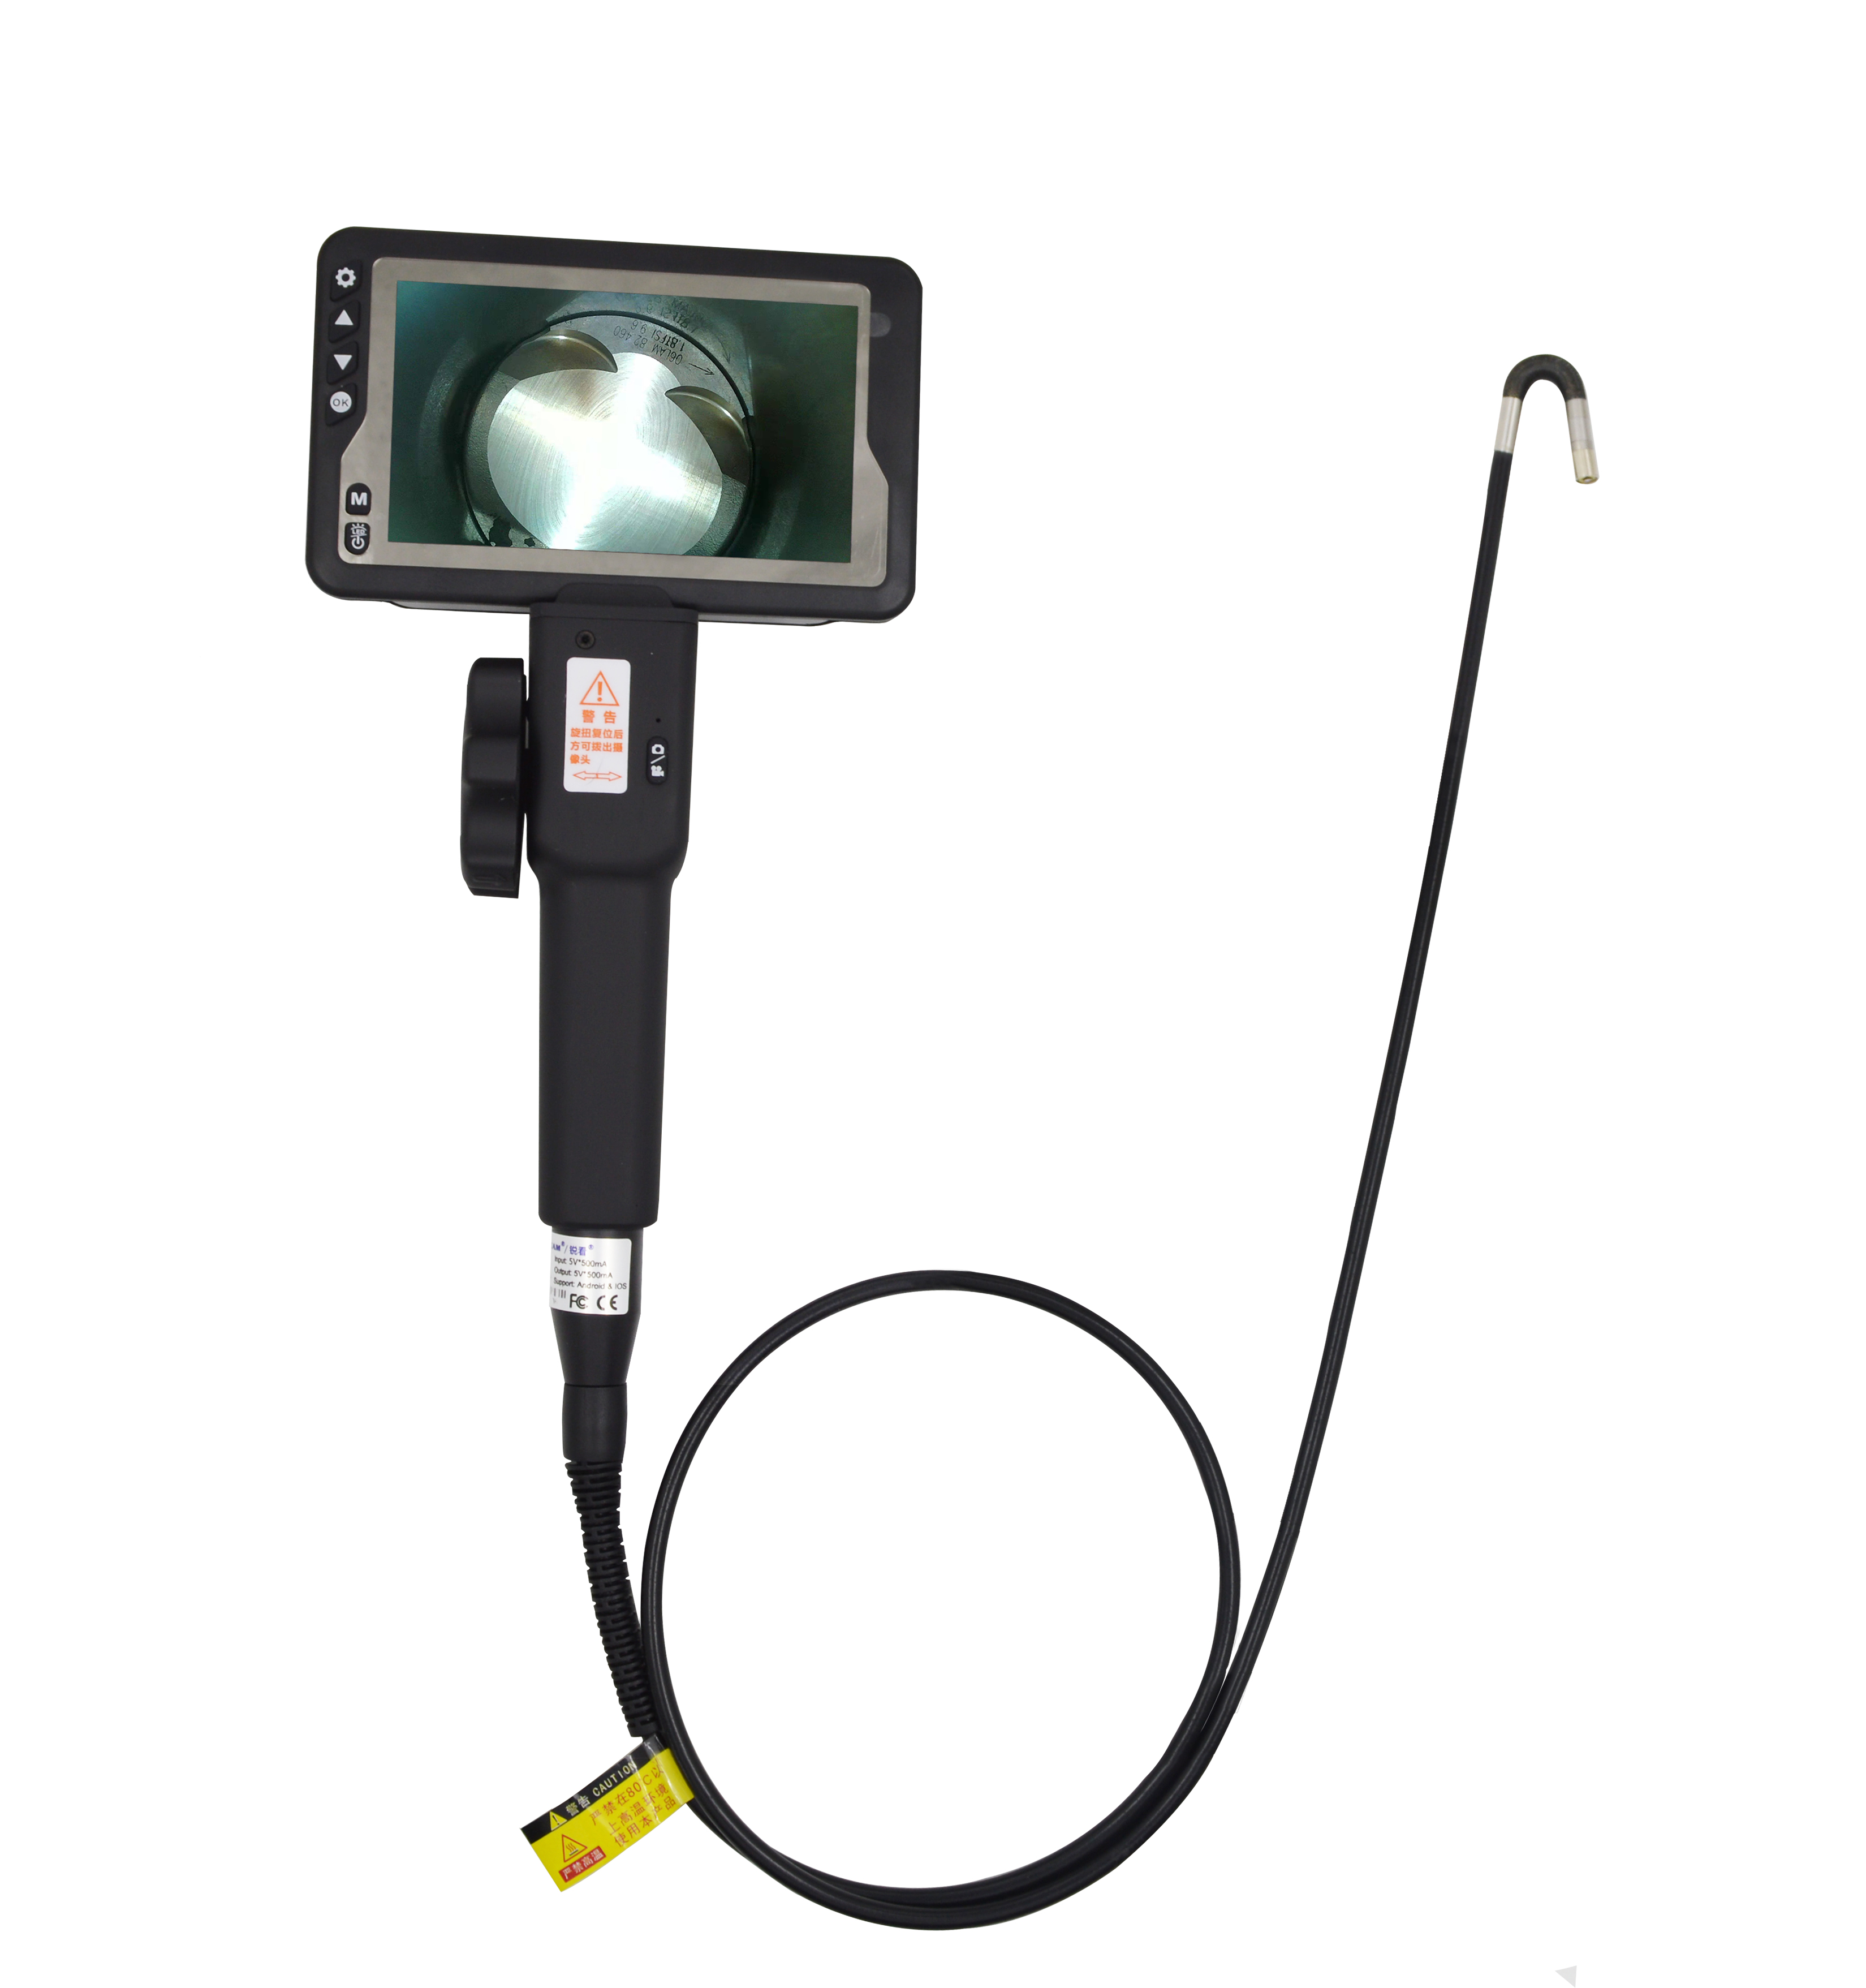 2 Directions  Rotation Endoscope Videoscope Camera 5.5mm Industrial Video Borescope Inspection Snake Camera With Screen For Car